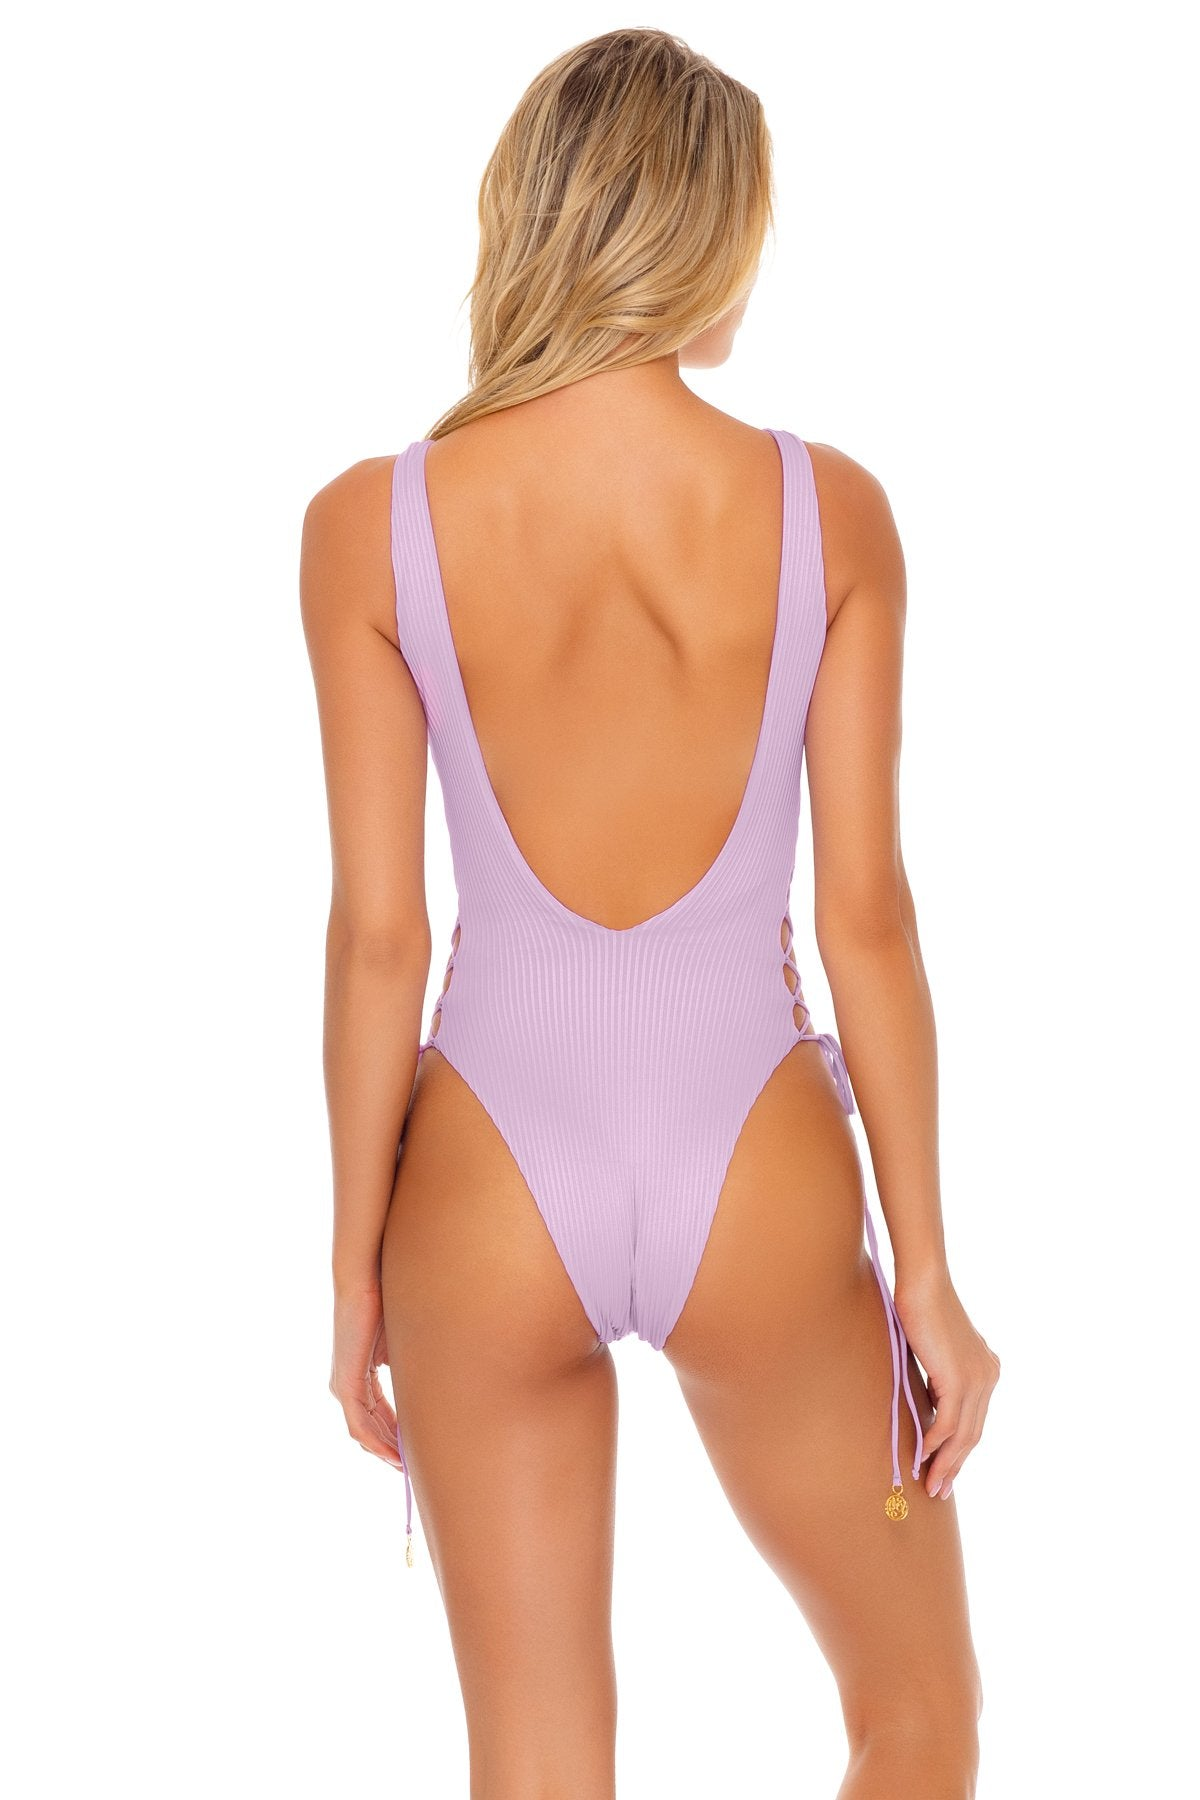 ORILLAS DEL MAR - Open Side One Piecebodysuit • Unicorn